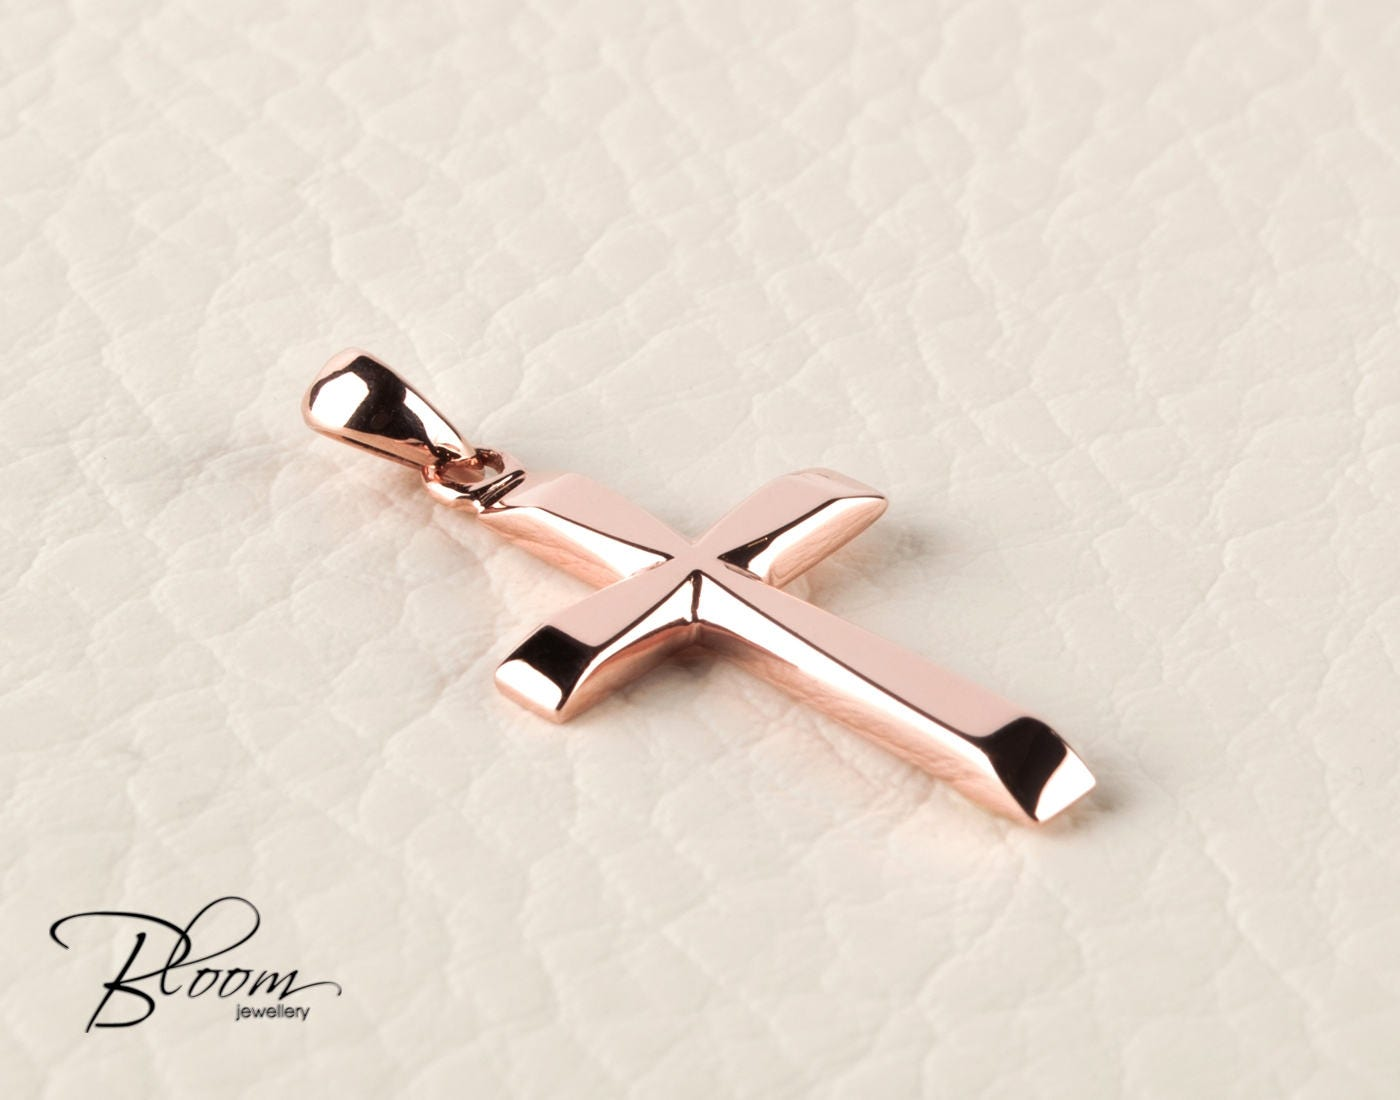 rose gold cross necklace rose gold pendant for men rose gold. Black Bedroom Furniture Sets. Home Design Ideas